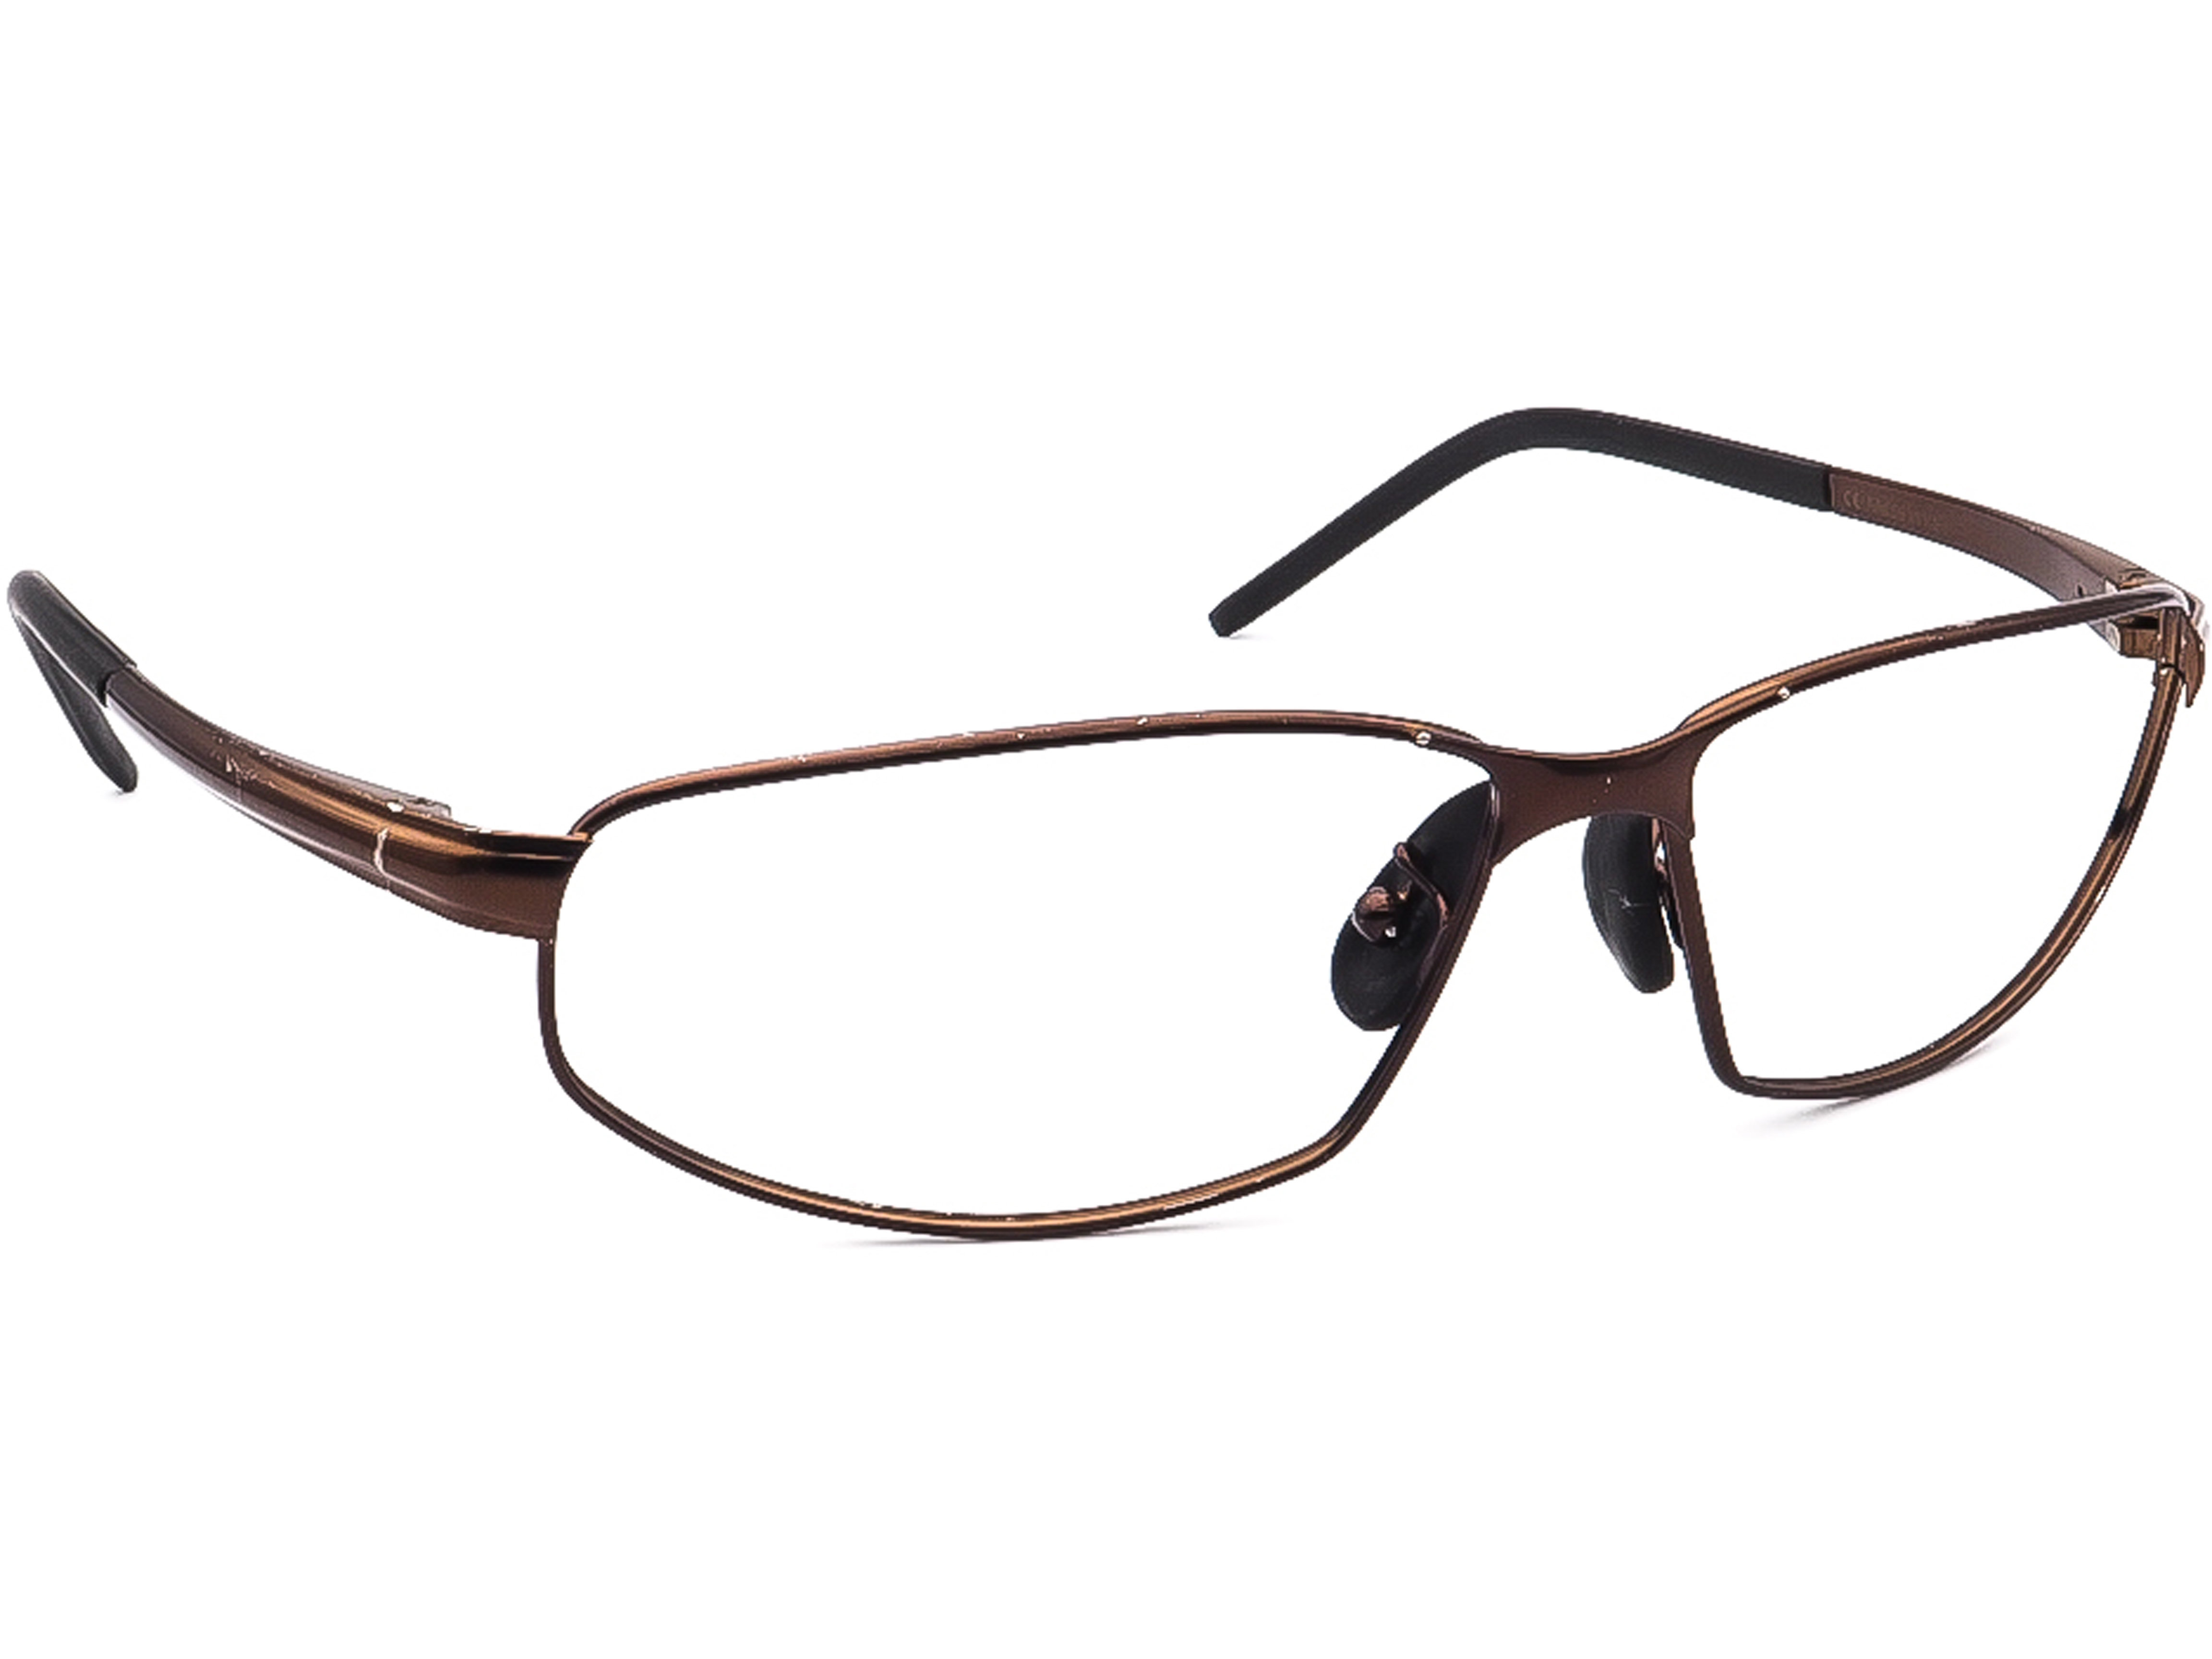 Serengeti Granada 7300 Sunglasses Frame Only